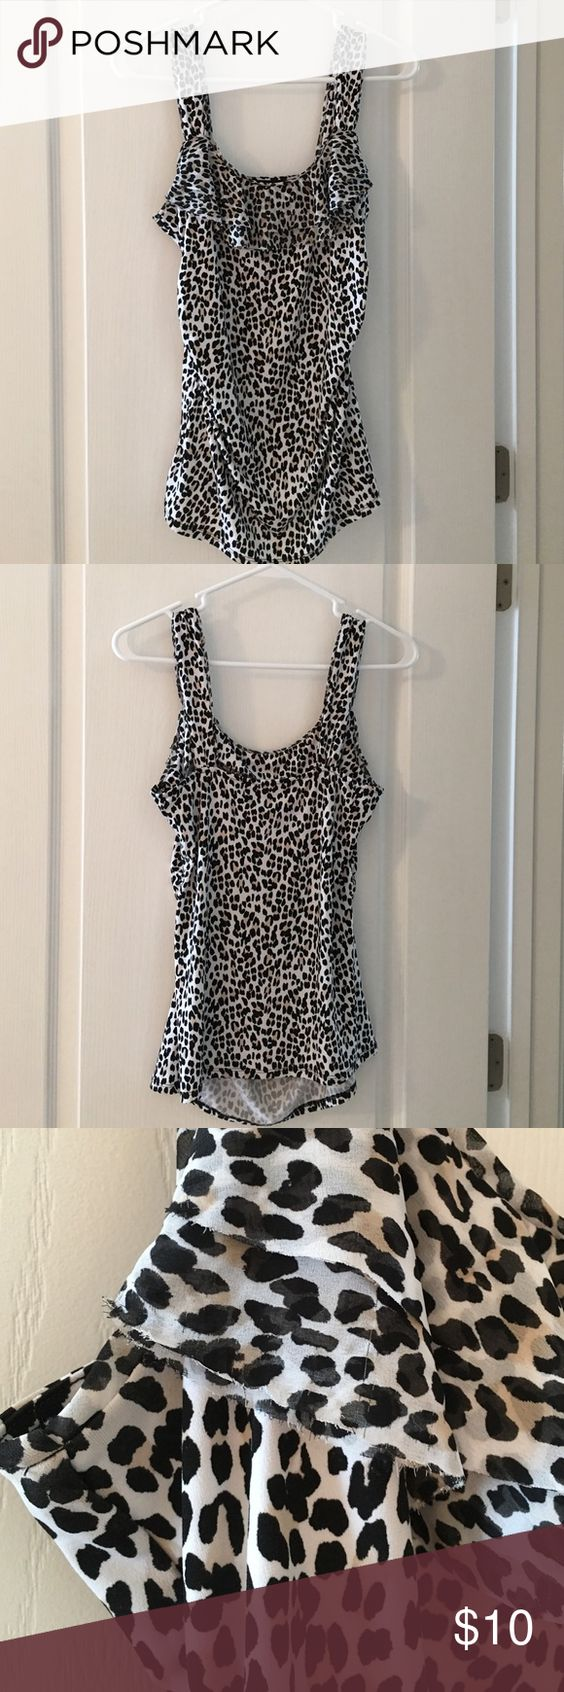 Leopard tank Ruffle neckline, slight gathering on sides to make front have a little extra fabric around tummy so it has a ruching ( sp?) look, straight back, good condition, only issue is wear on ruffle under the arms as pictured. Very close to the body fit, even in the front. Would look great with the black pants I have listed! White House Black Market Tops Tank Tops